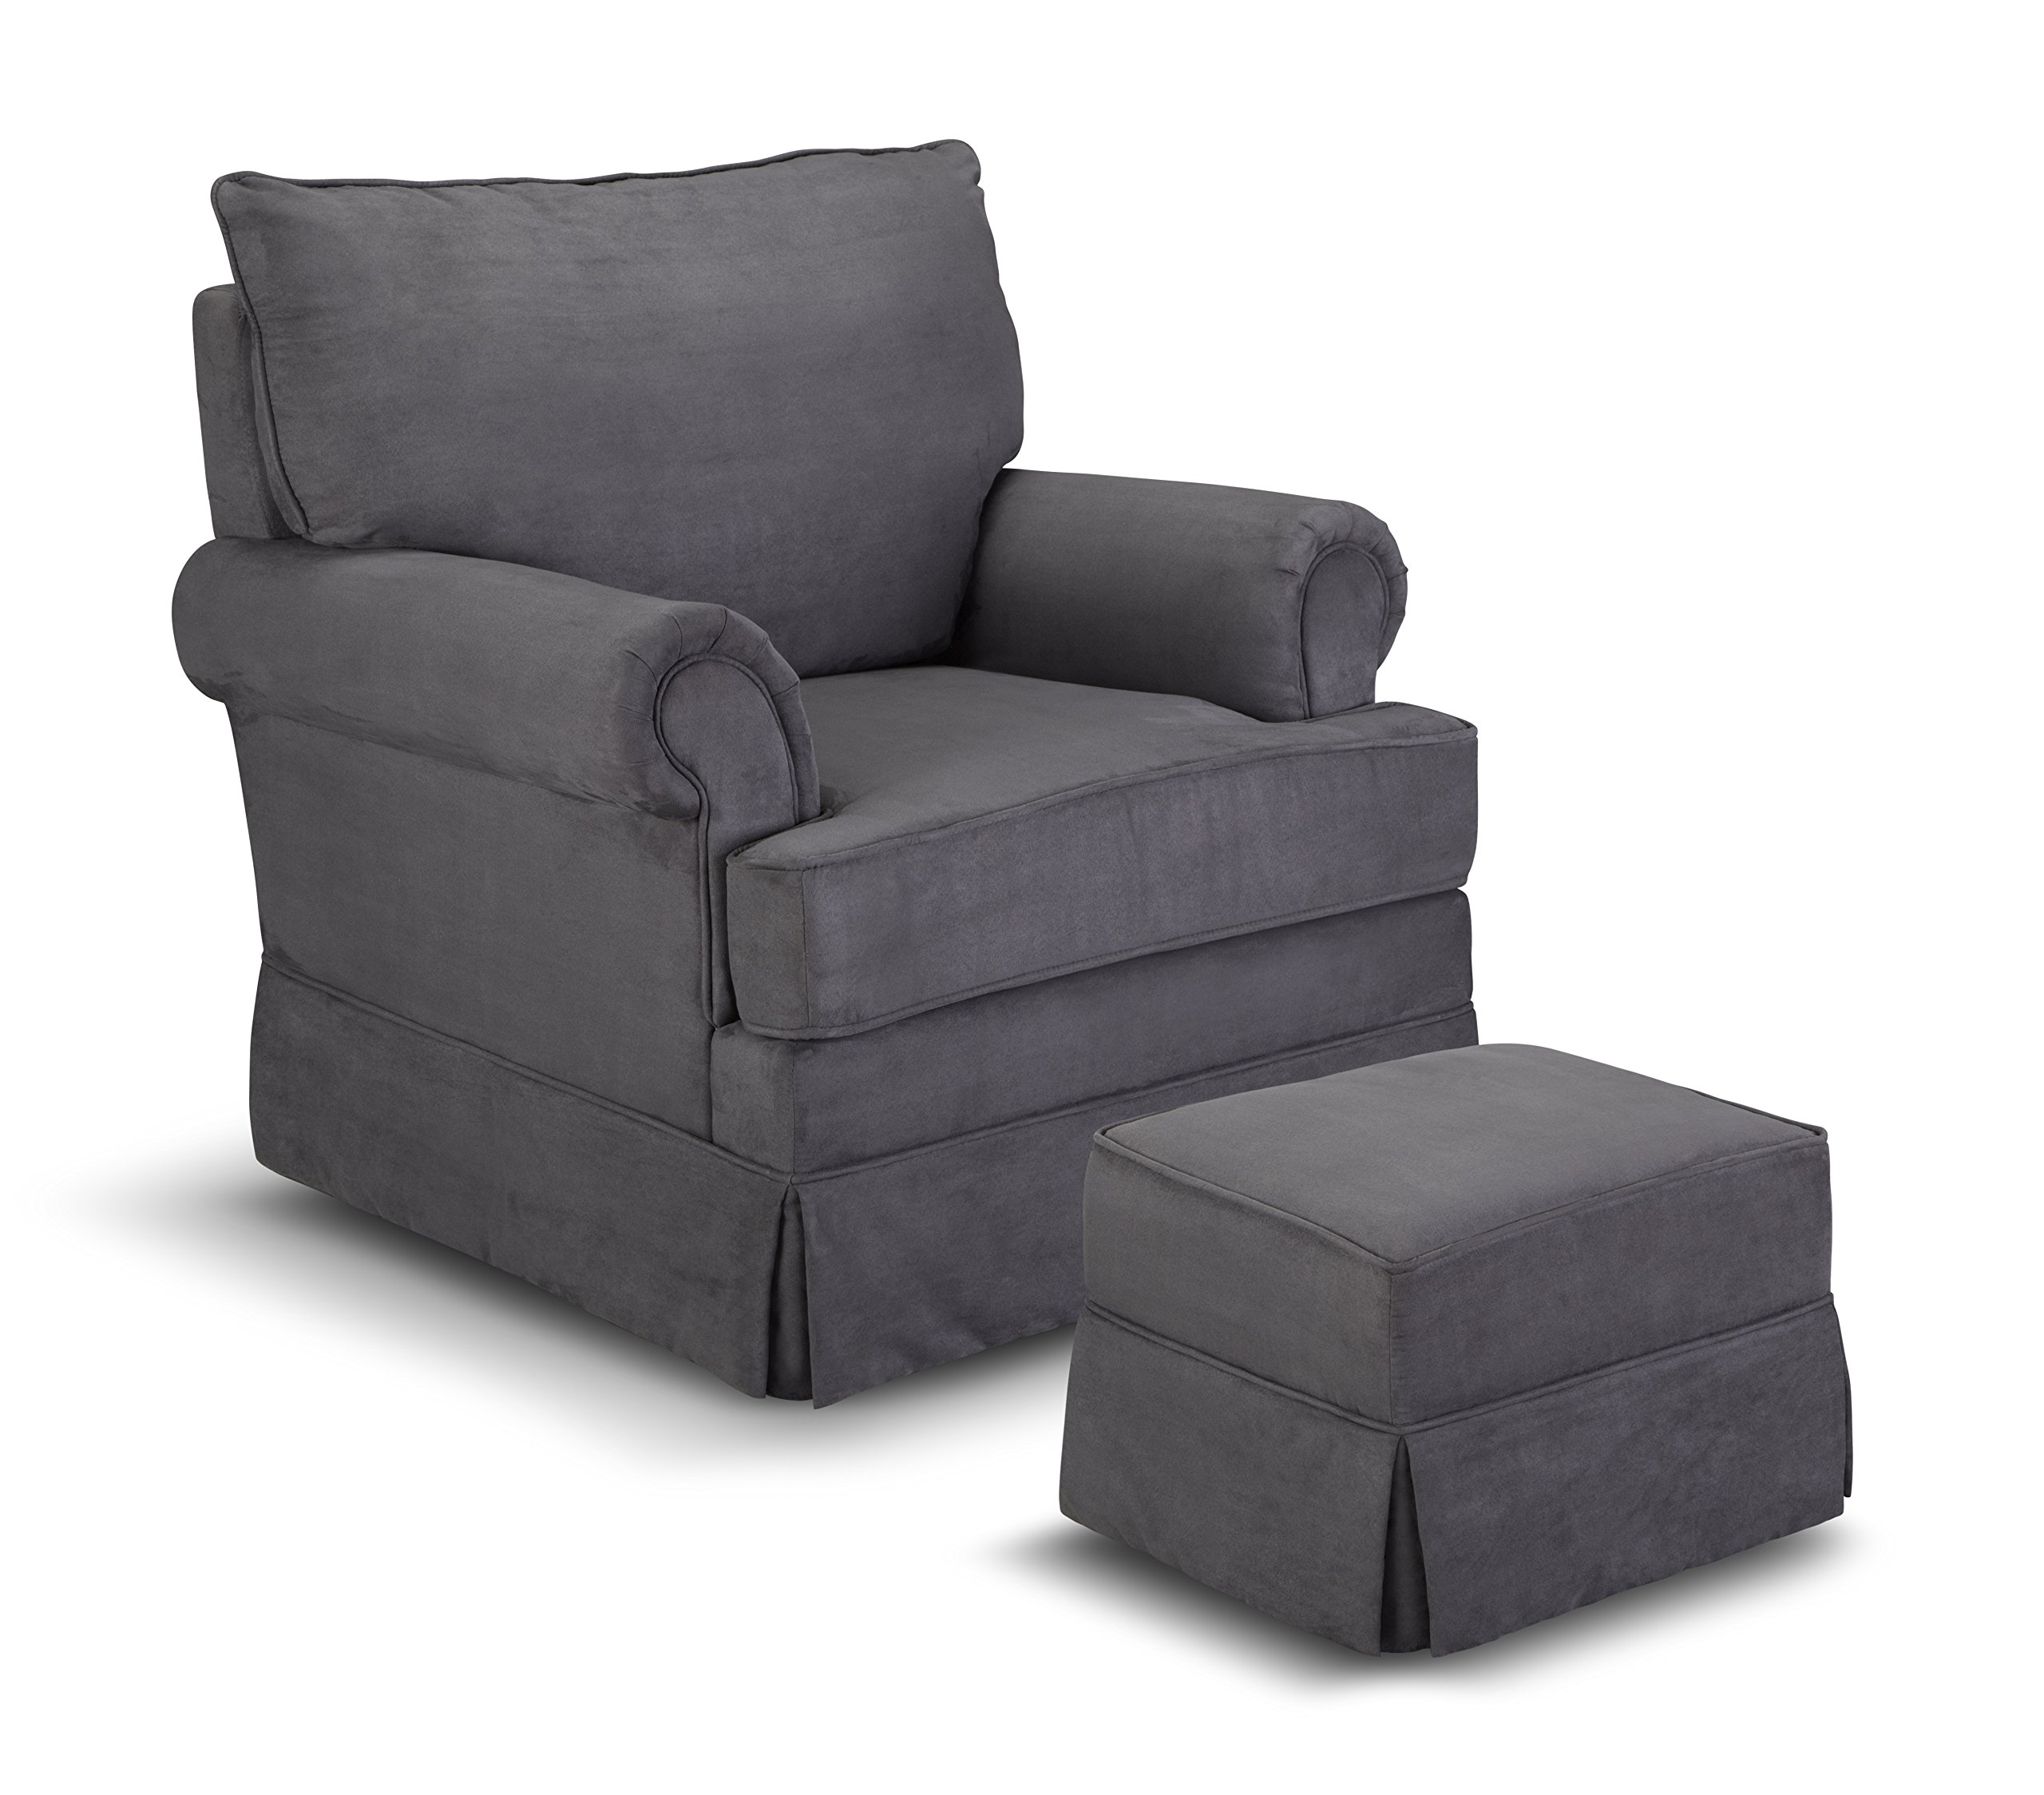 Thomasville Kids Grand Royale Upholstered Swivel Glider and Ottoman, Gray